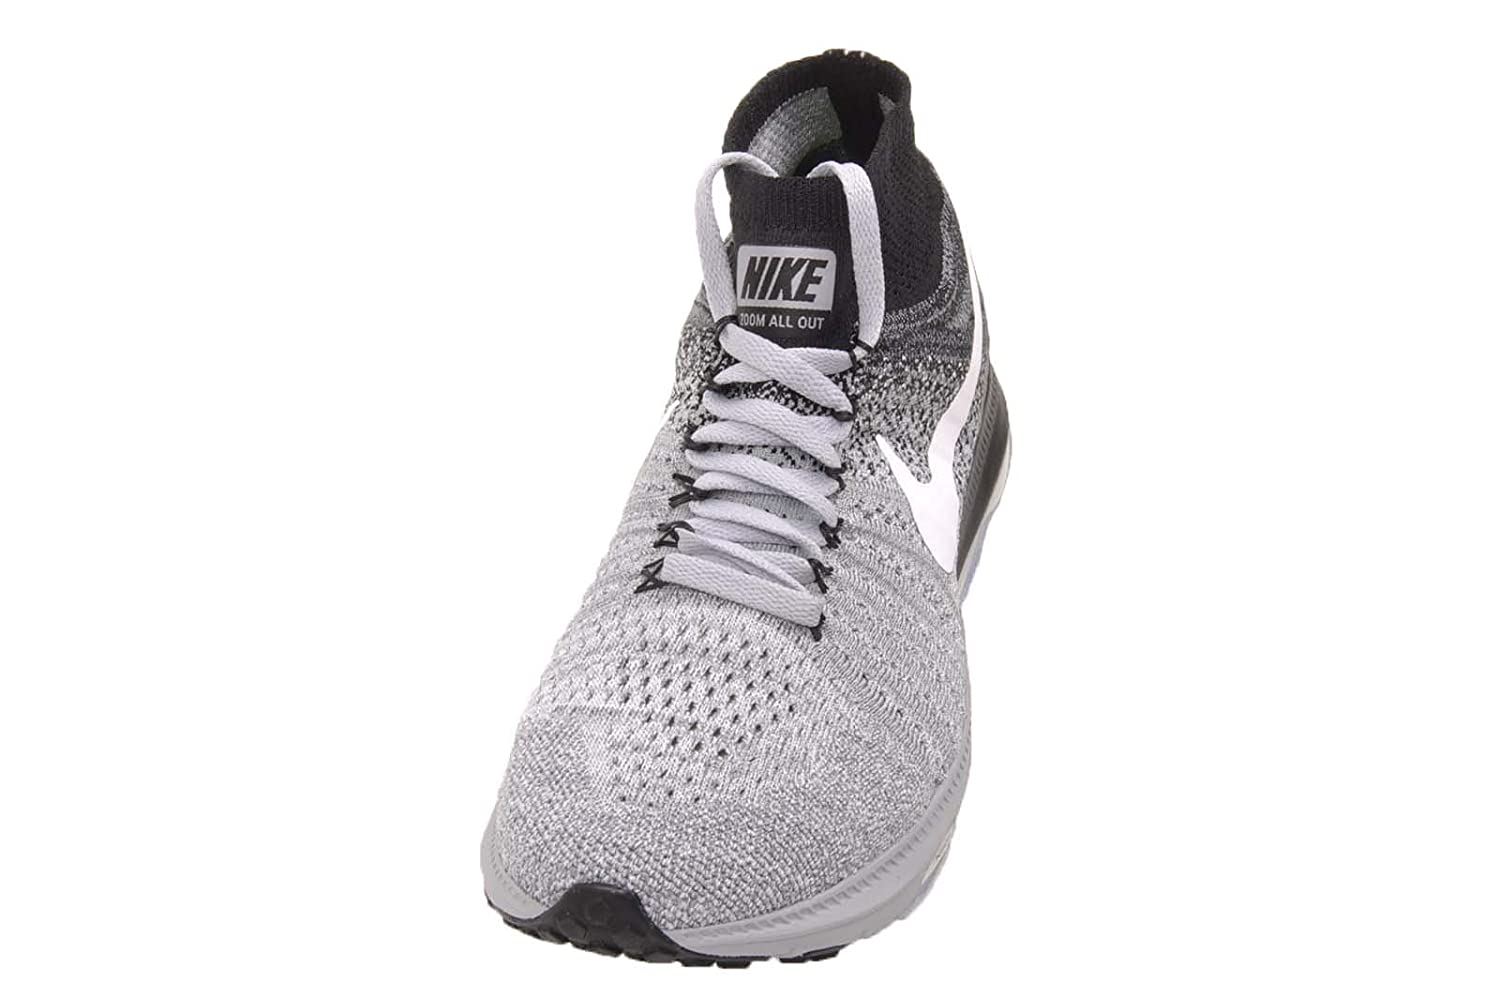 Nike Women's Zoom All Out Flyknit Running Shoes B01M4IUSHF 9 B(M) US|Wolf Grey / White - Black